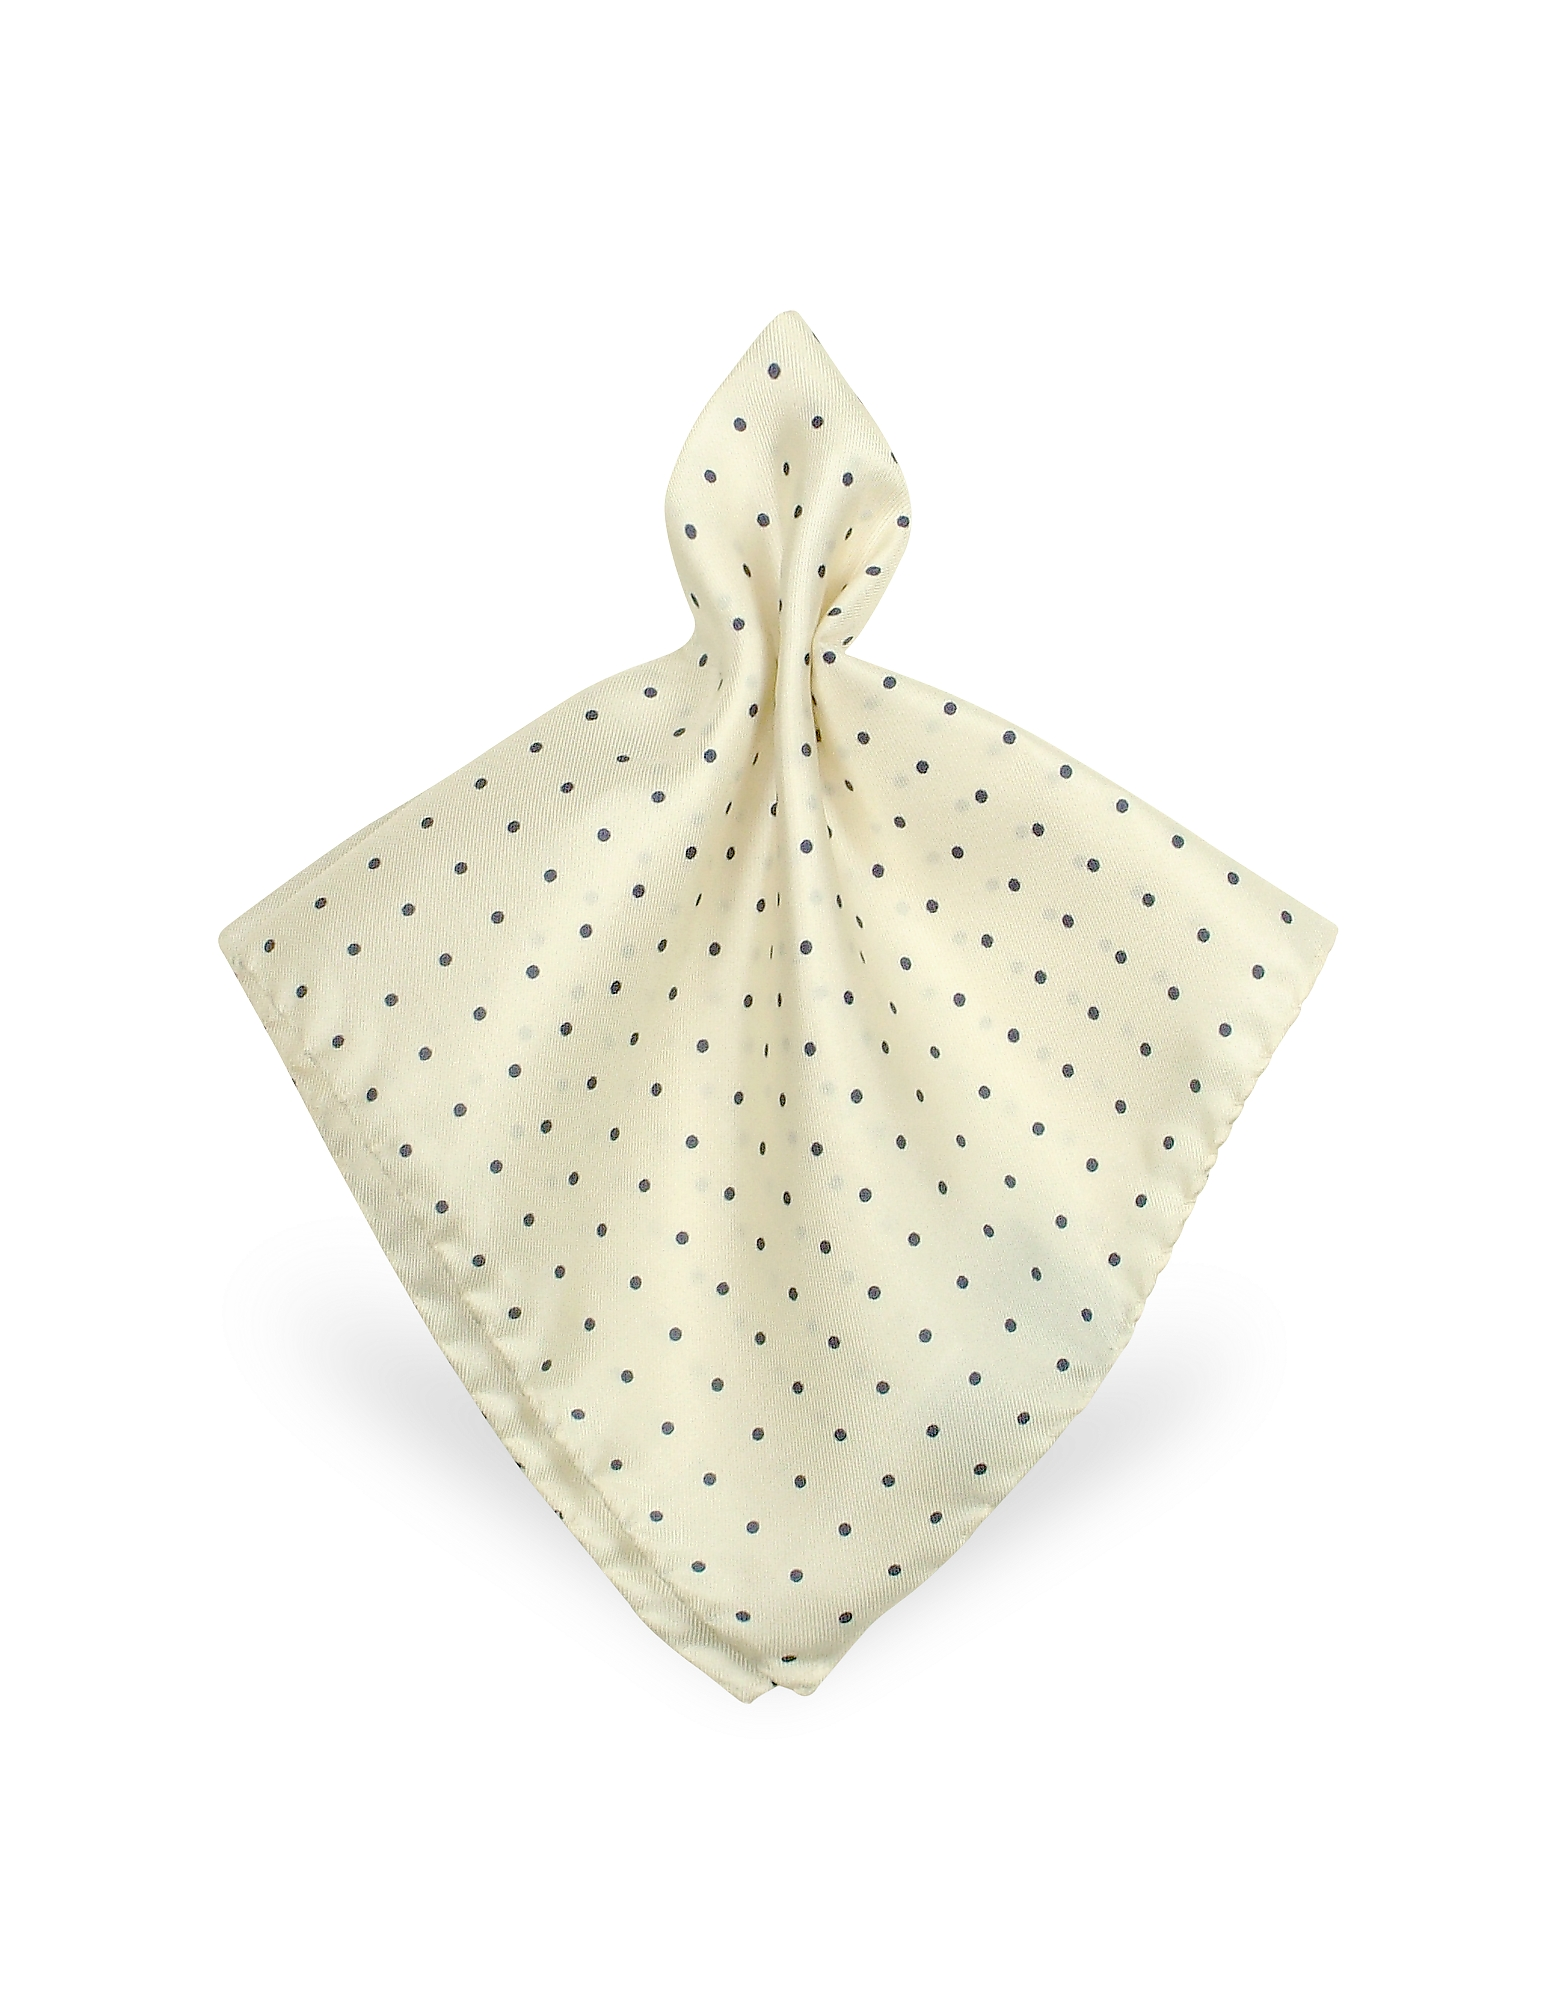 Image of Forzieri Designer Pocket Squares, Polkadot Twill Silk Pocket Square